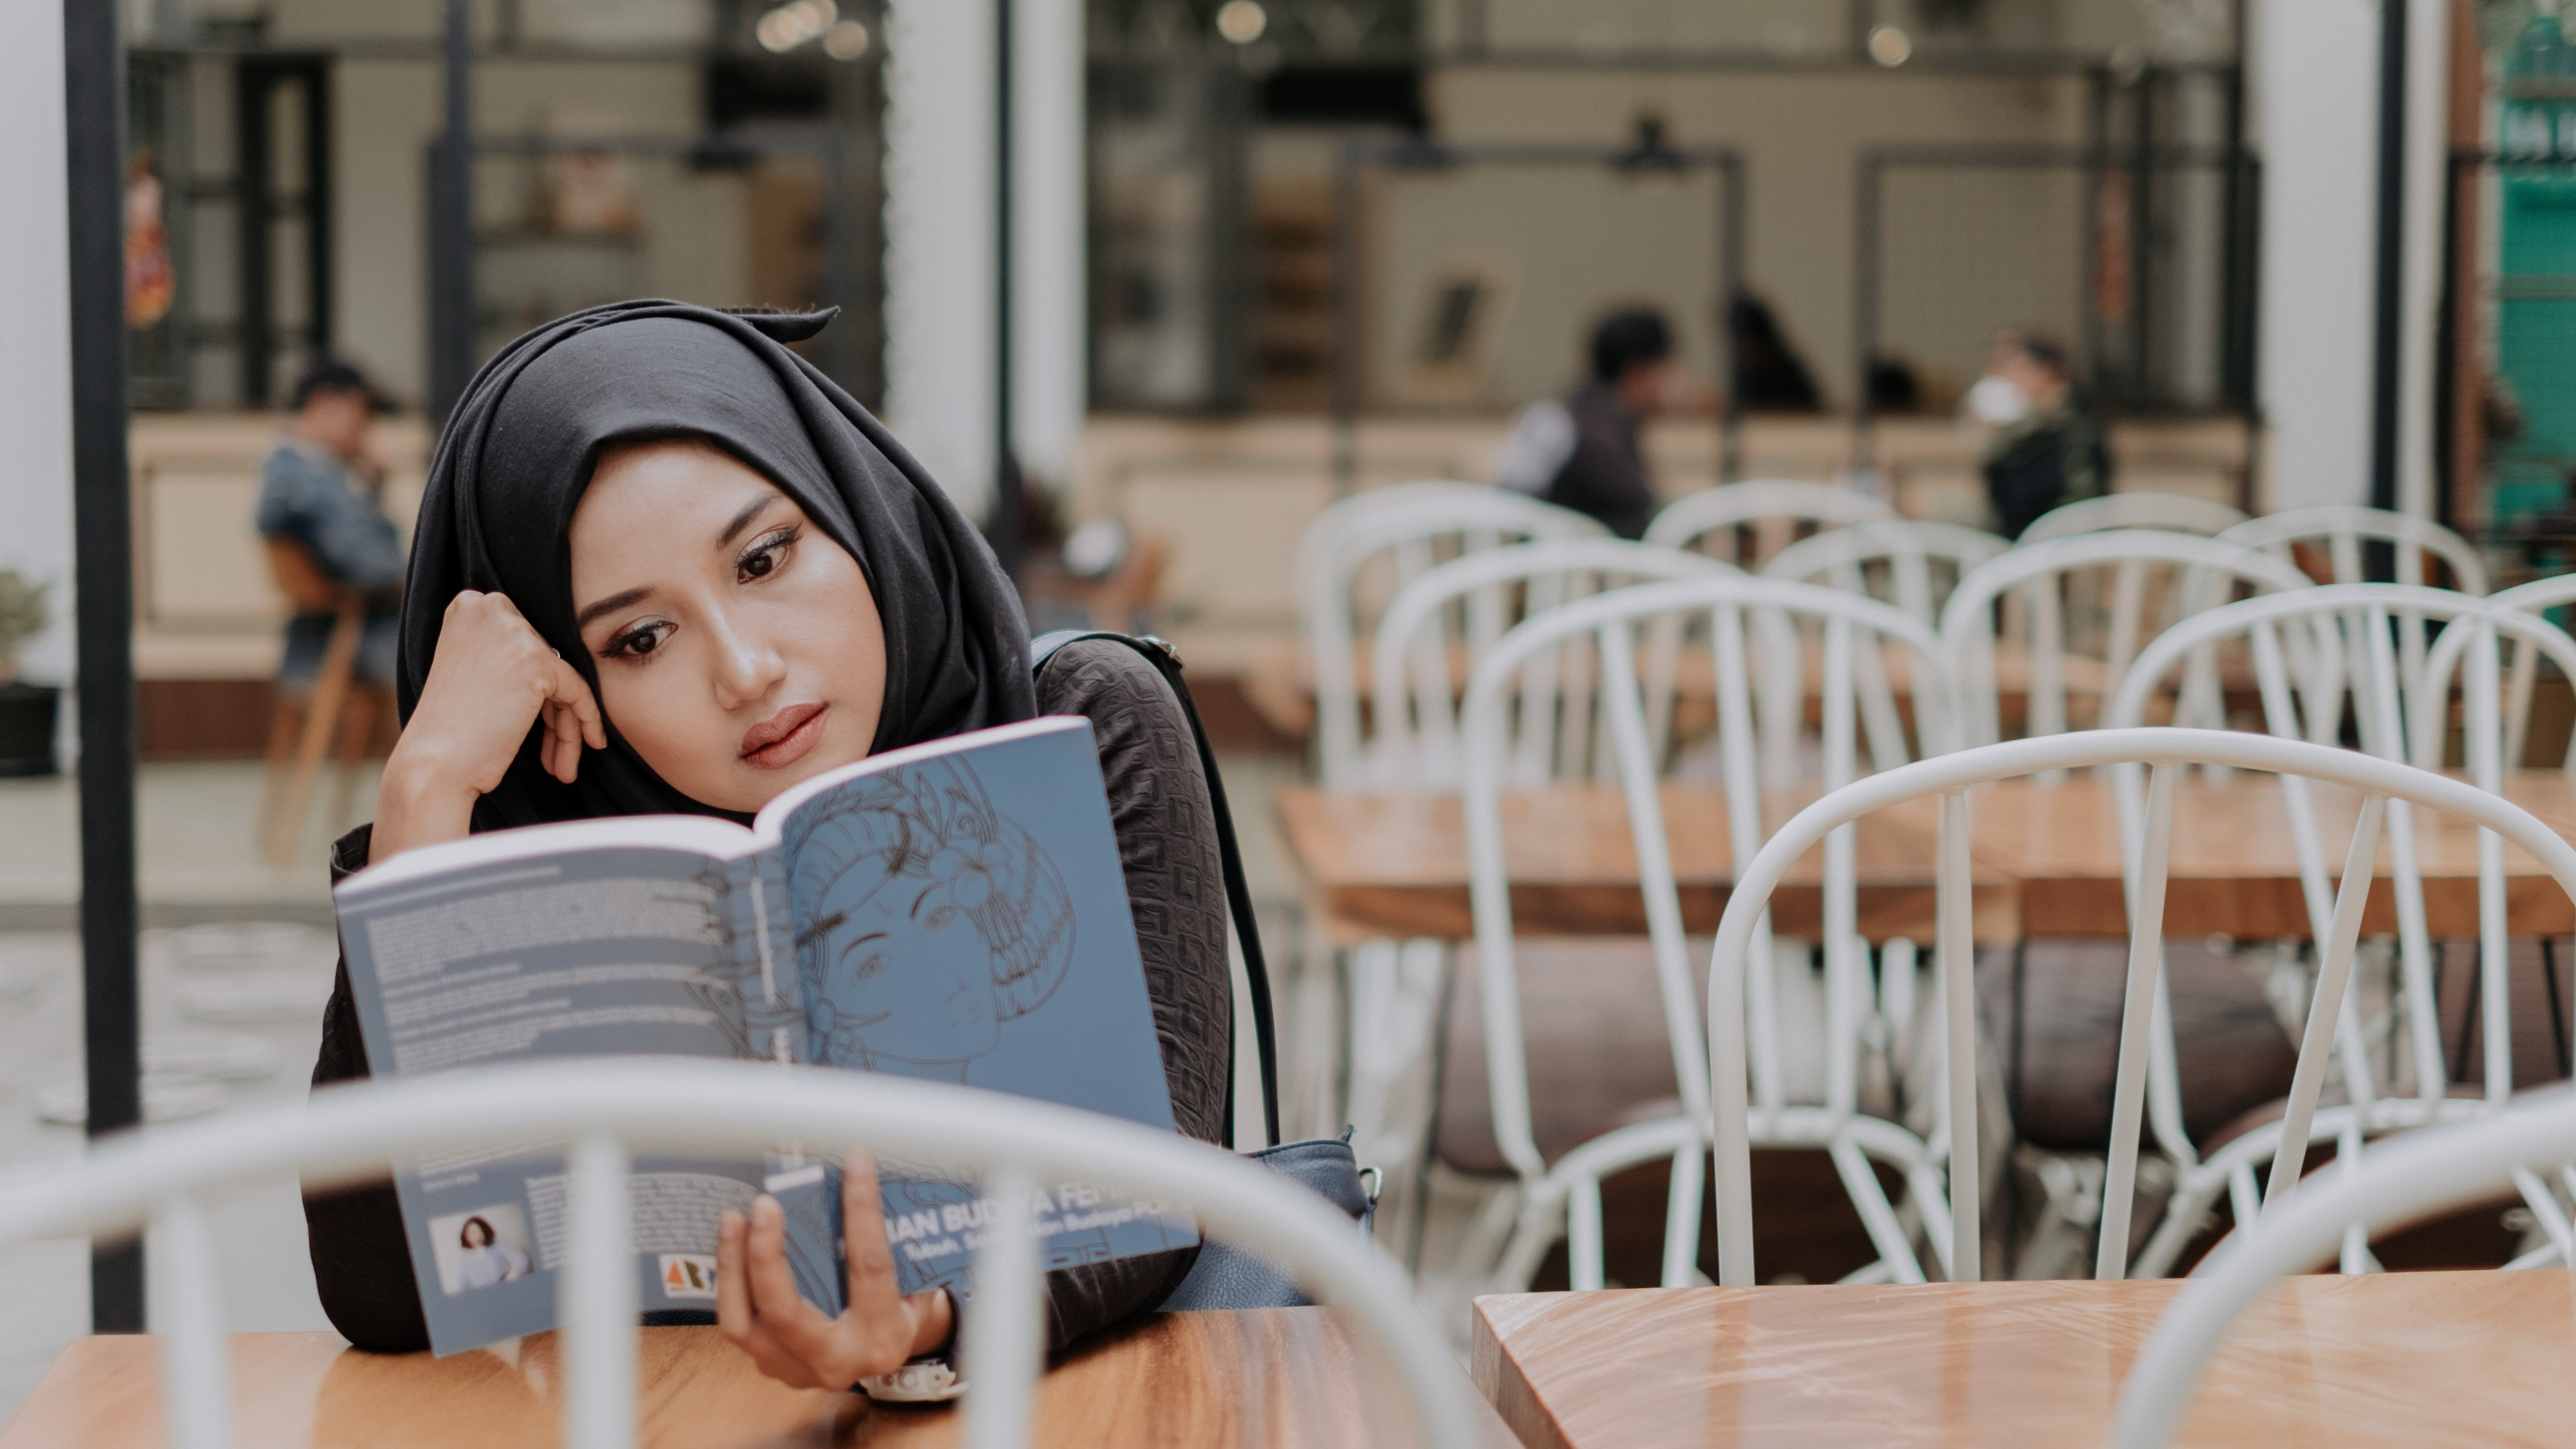 woman in black hijab reading book on selective focus photography